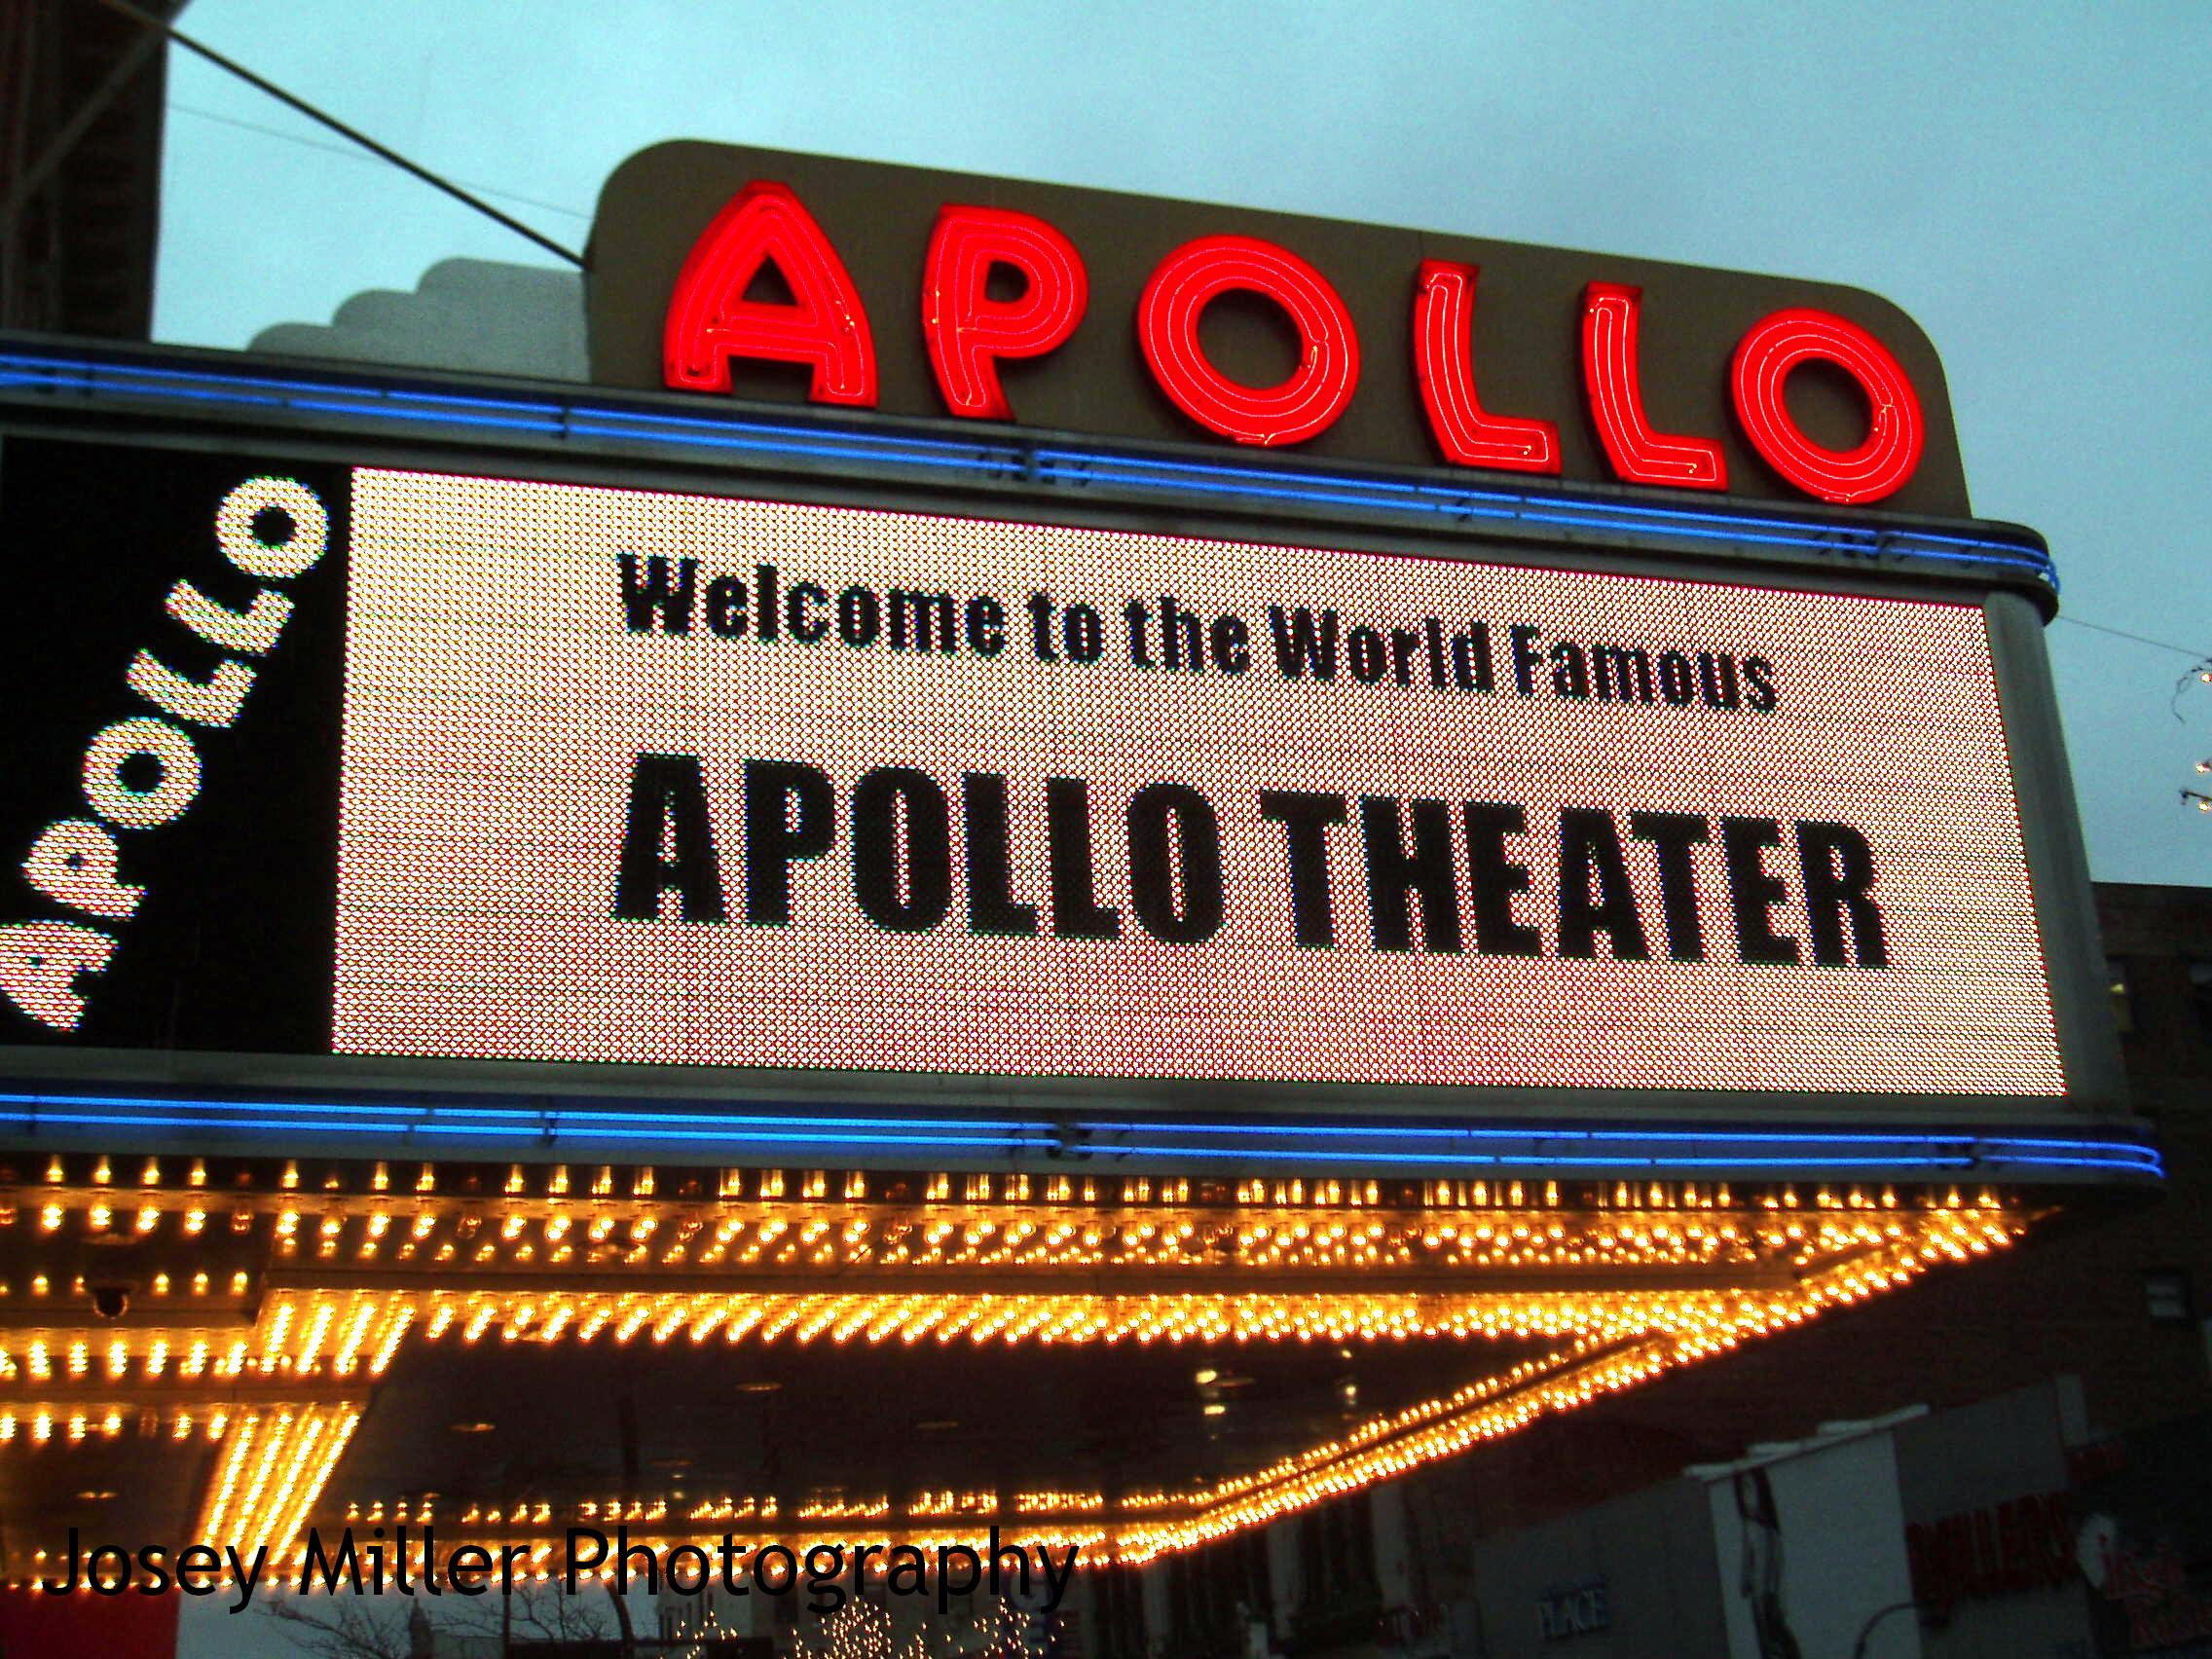 Harlem renaissance apollo theater